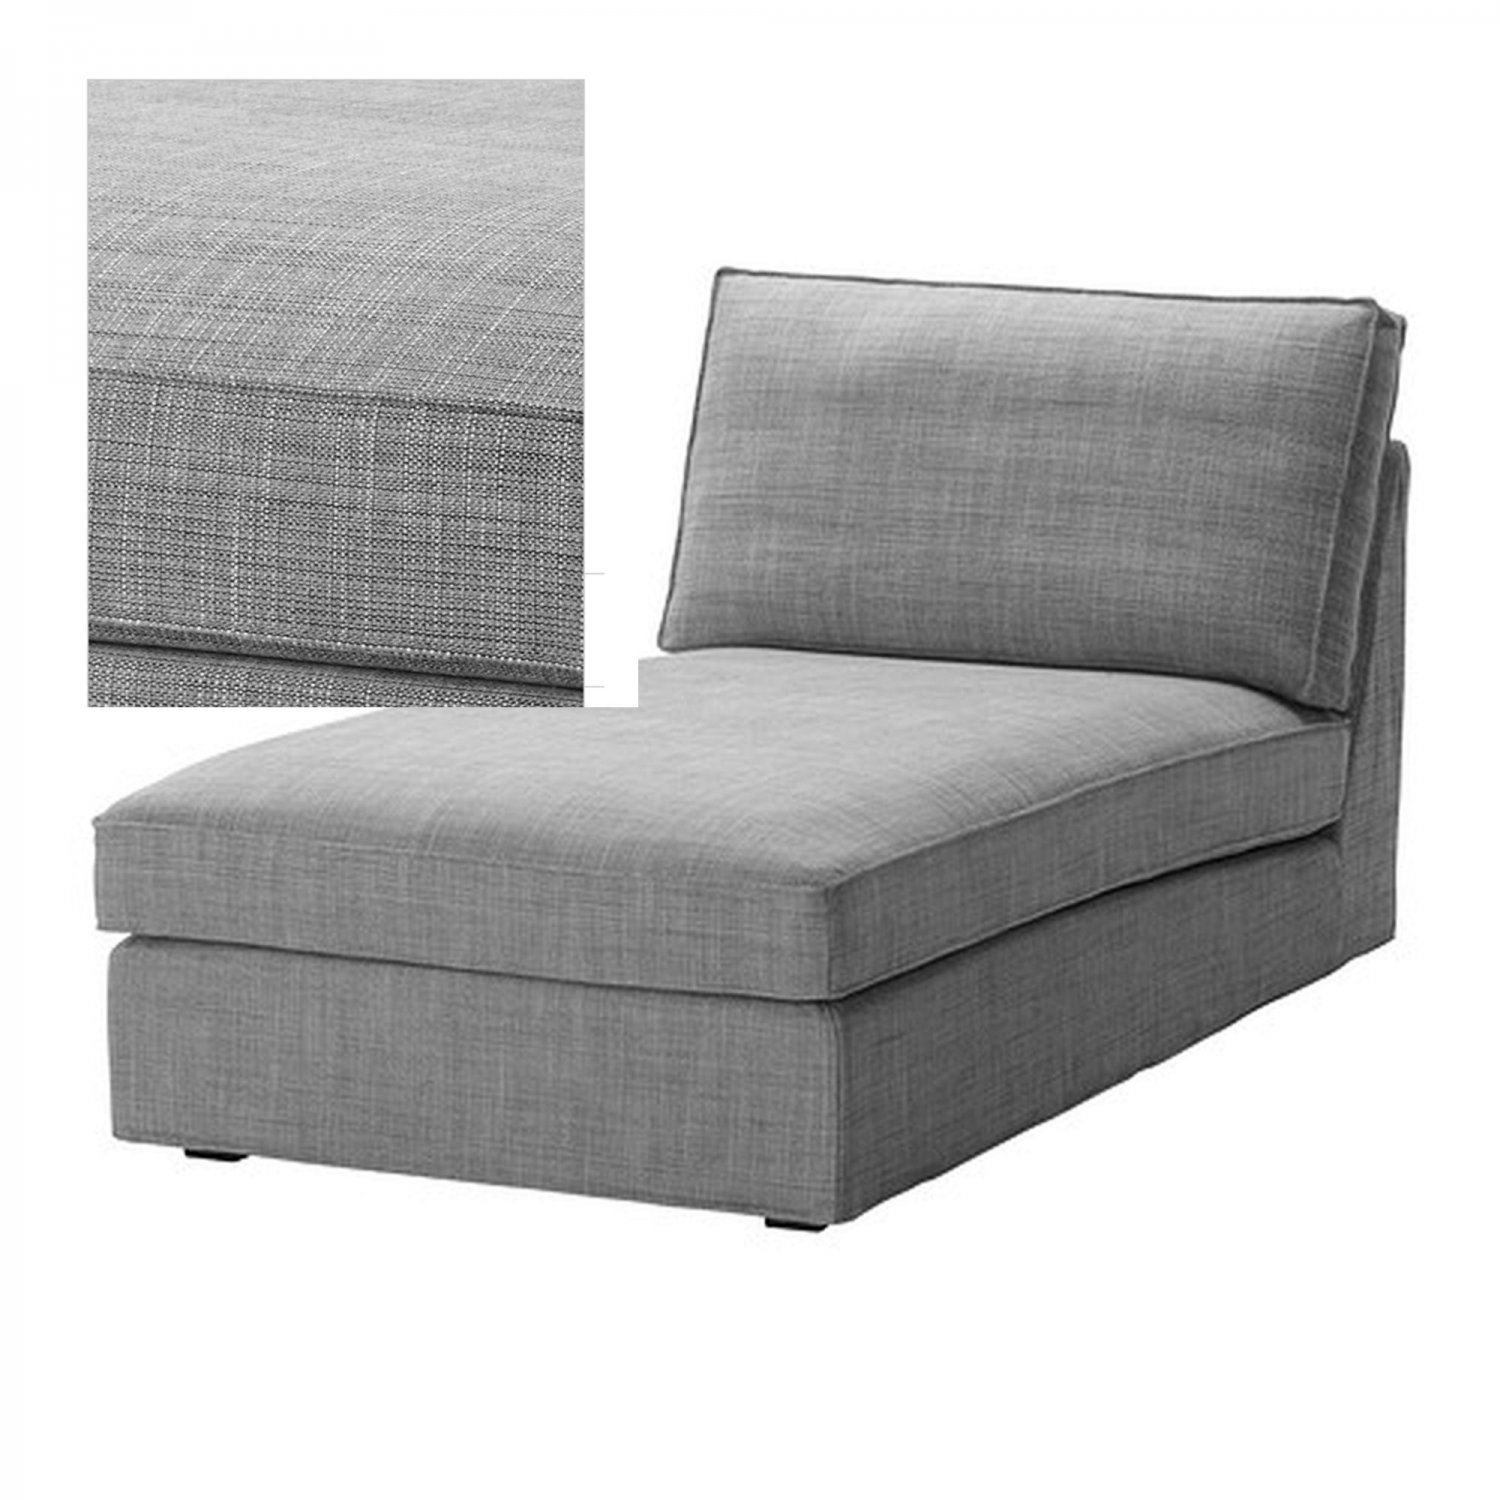 Ikea kivik chaise slipcover cover isunda gray grey bezug - Housse pour chaise ikea ...